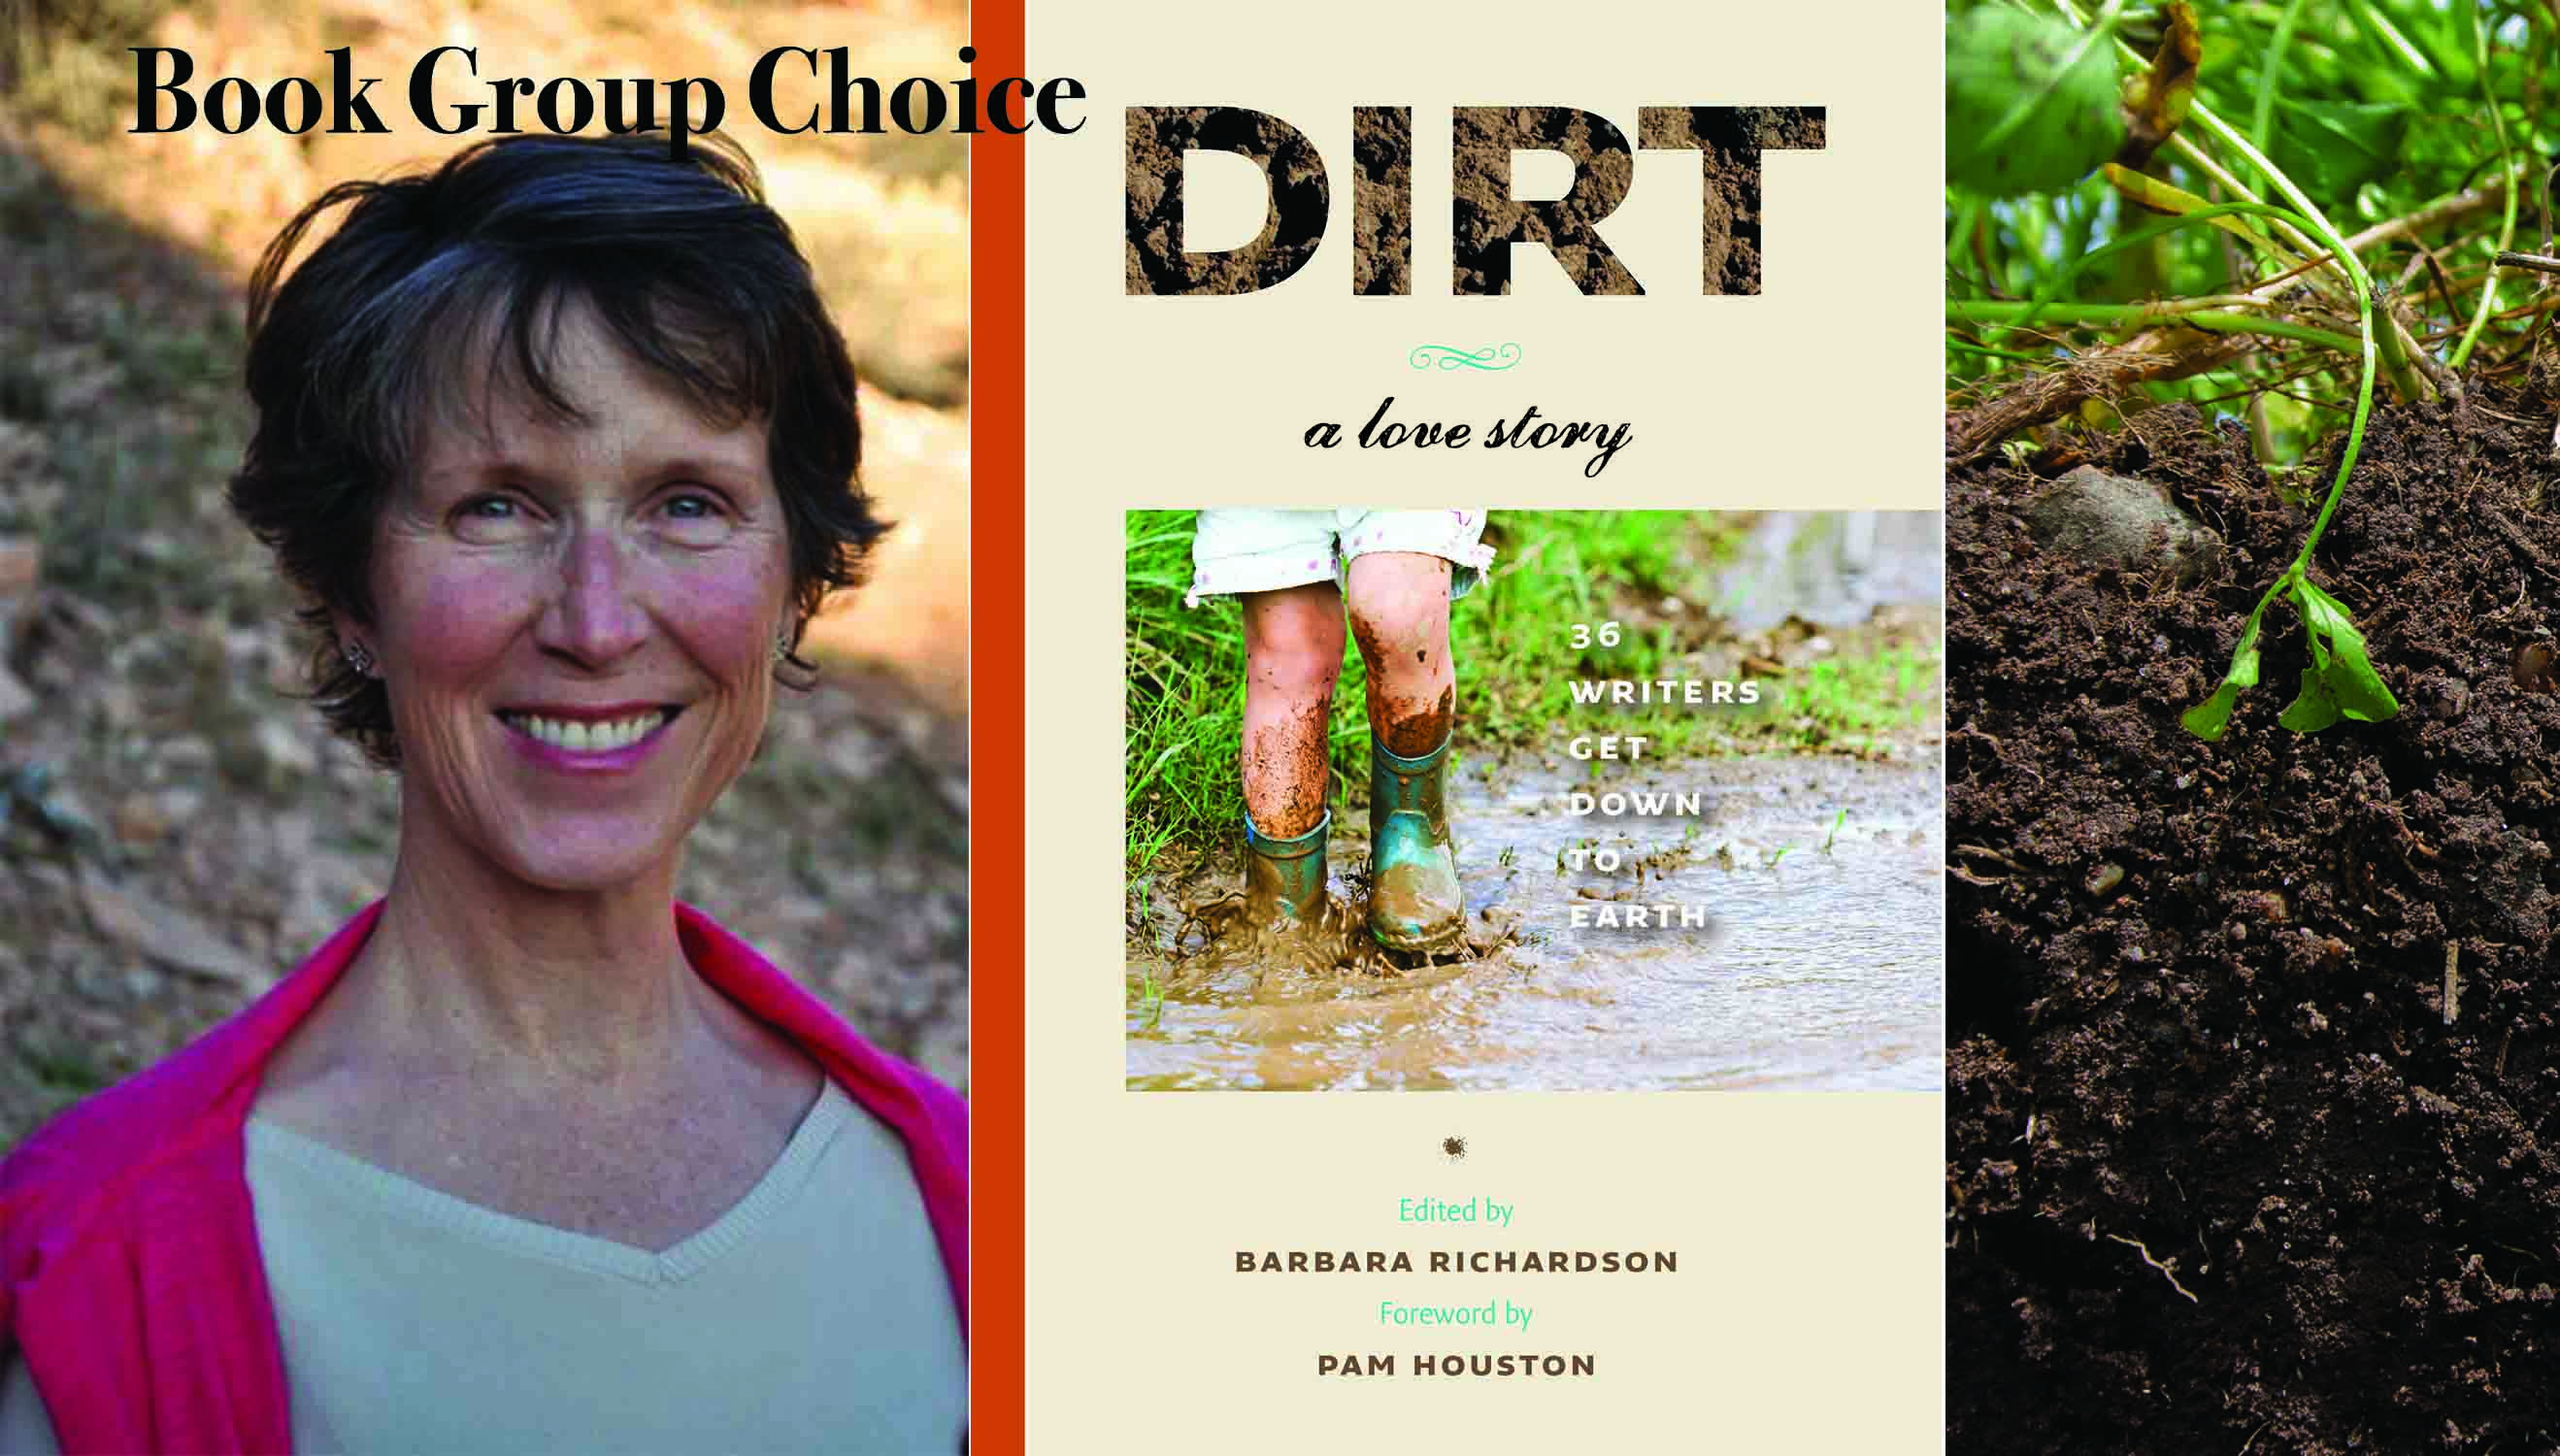 Dirt, A love Story, edited by Barbara Richardson. Selection for the March 3rd session of the Slow Food Russian River Book Group meeting